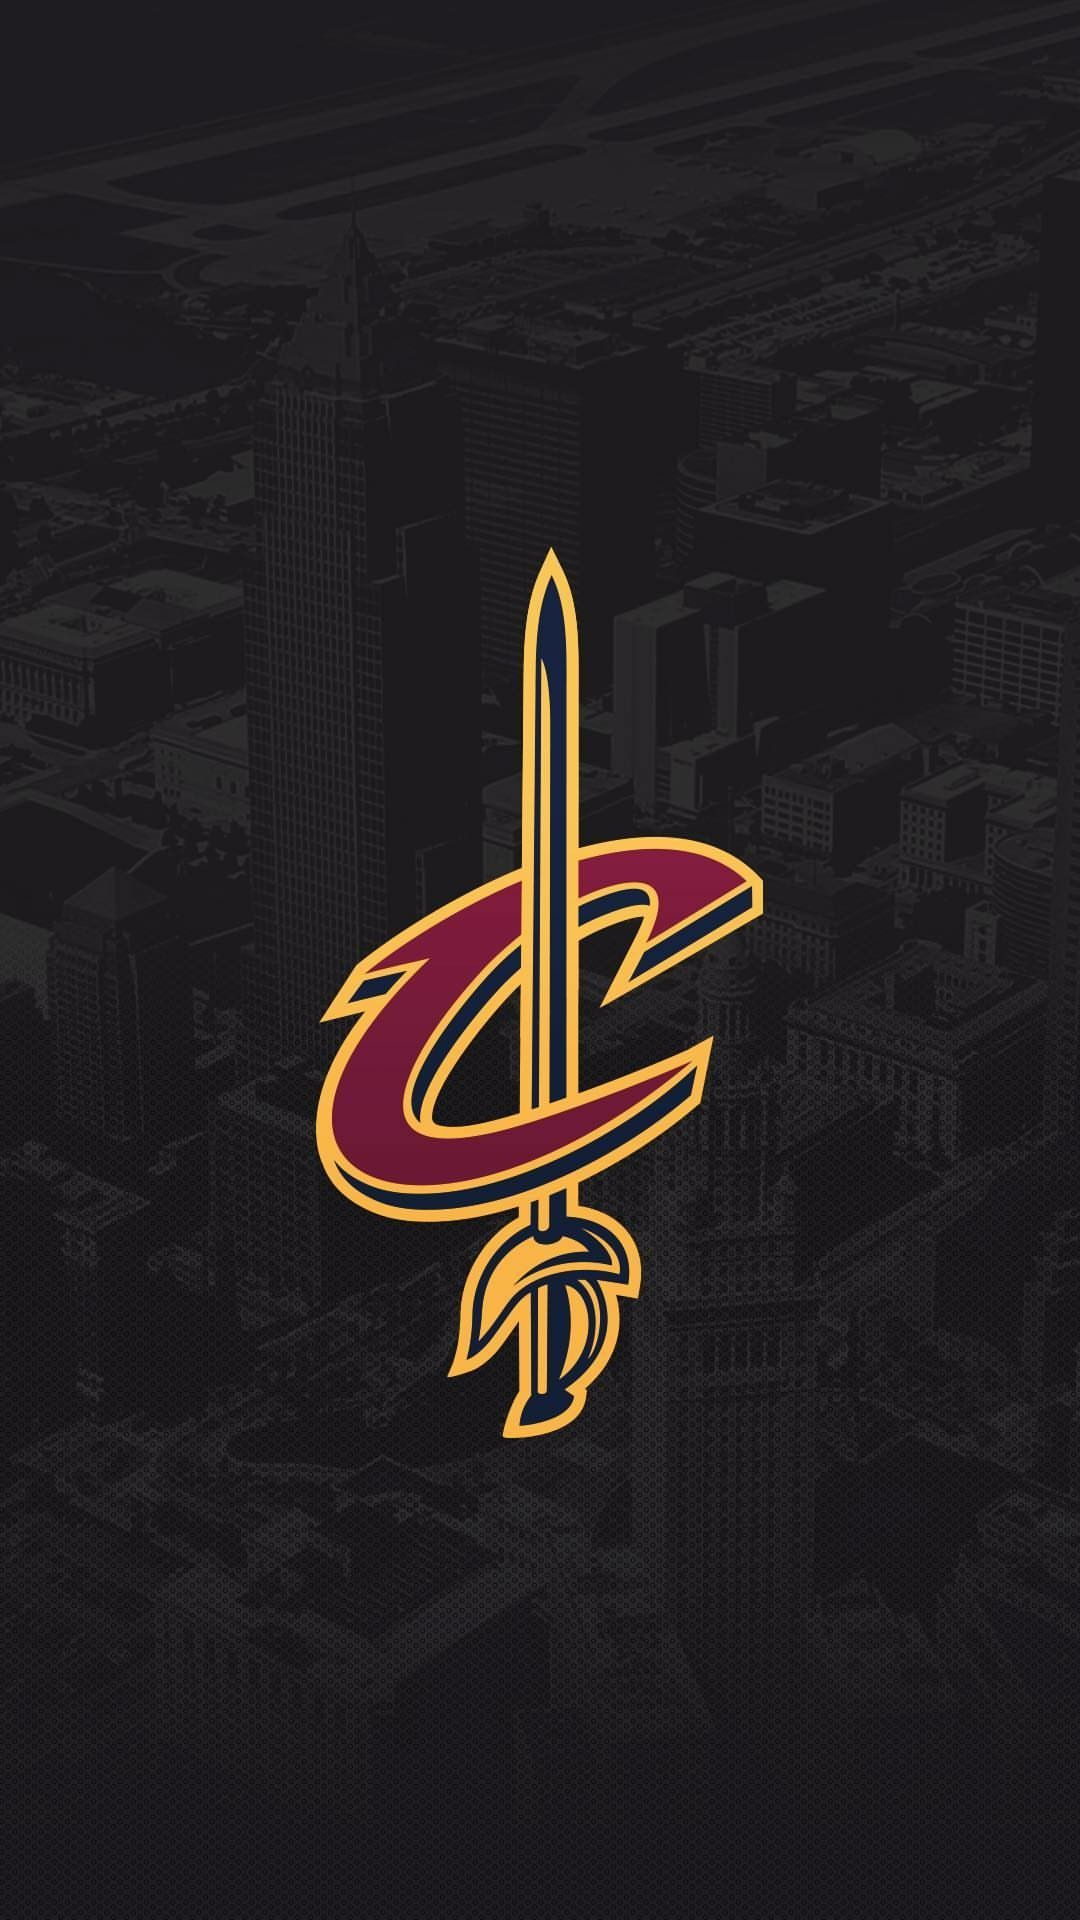 Cleveland cavaliers backgrounds - Cleveland cavaliers wallpaper ...